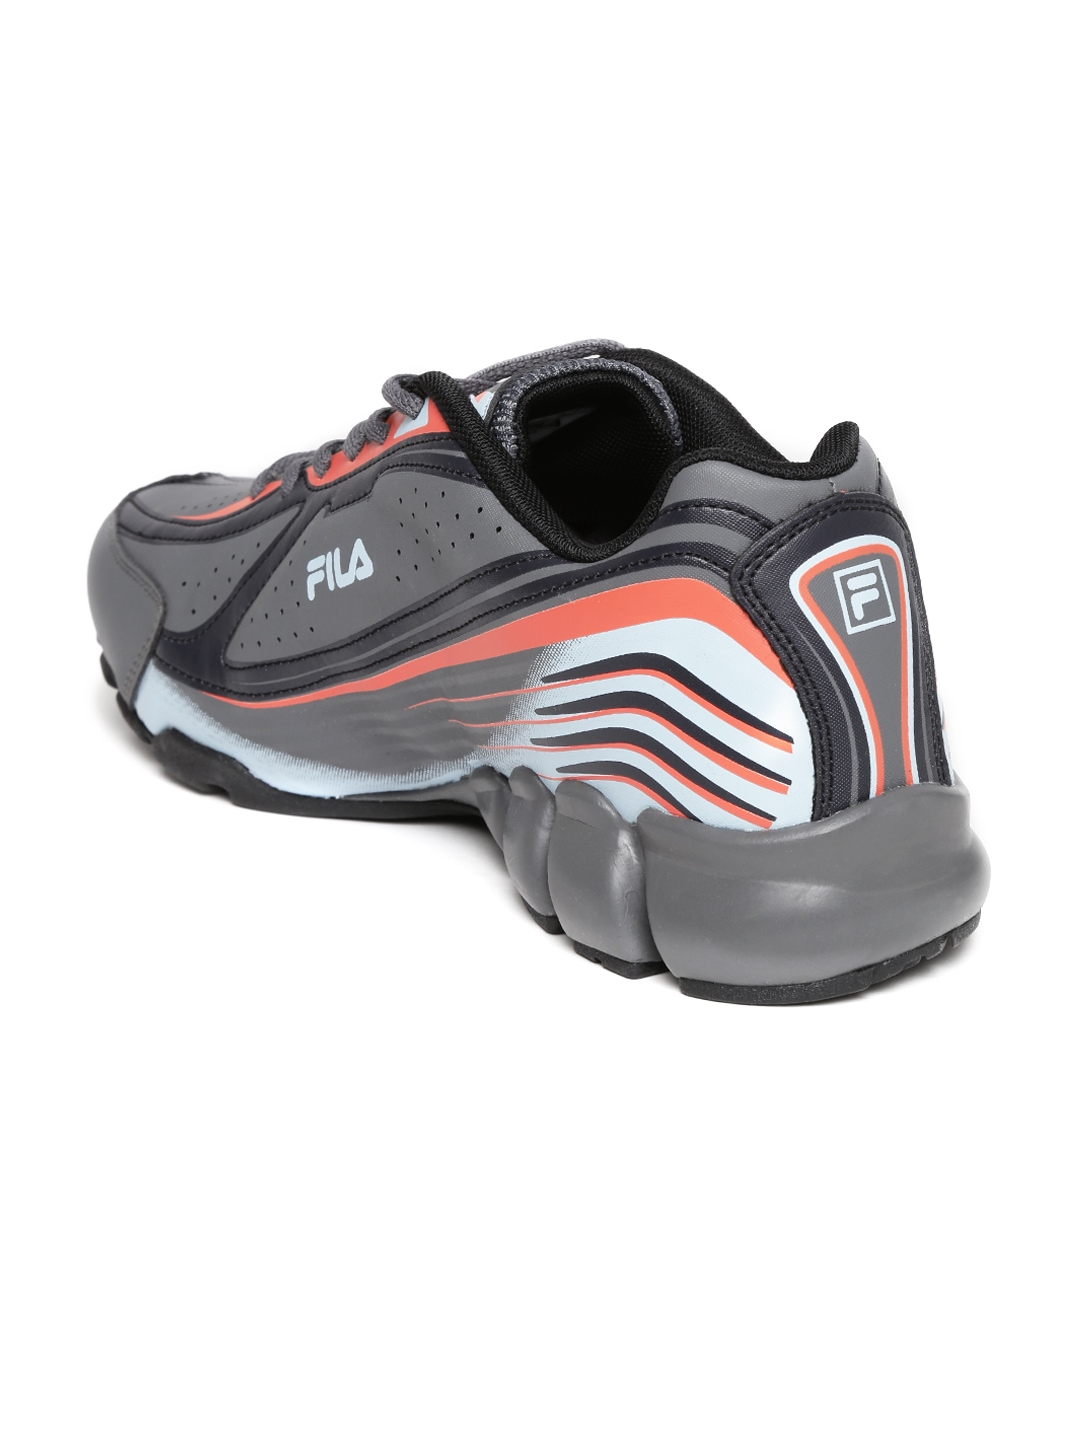 Fila Shoes Online Myntra